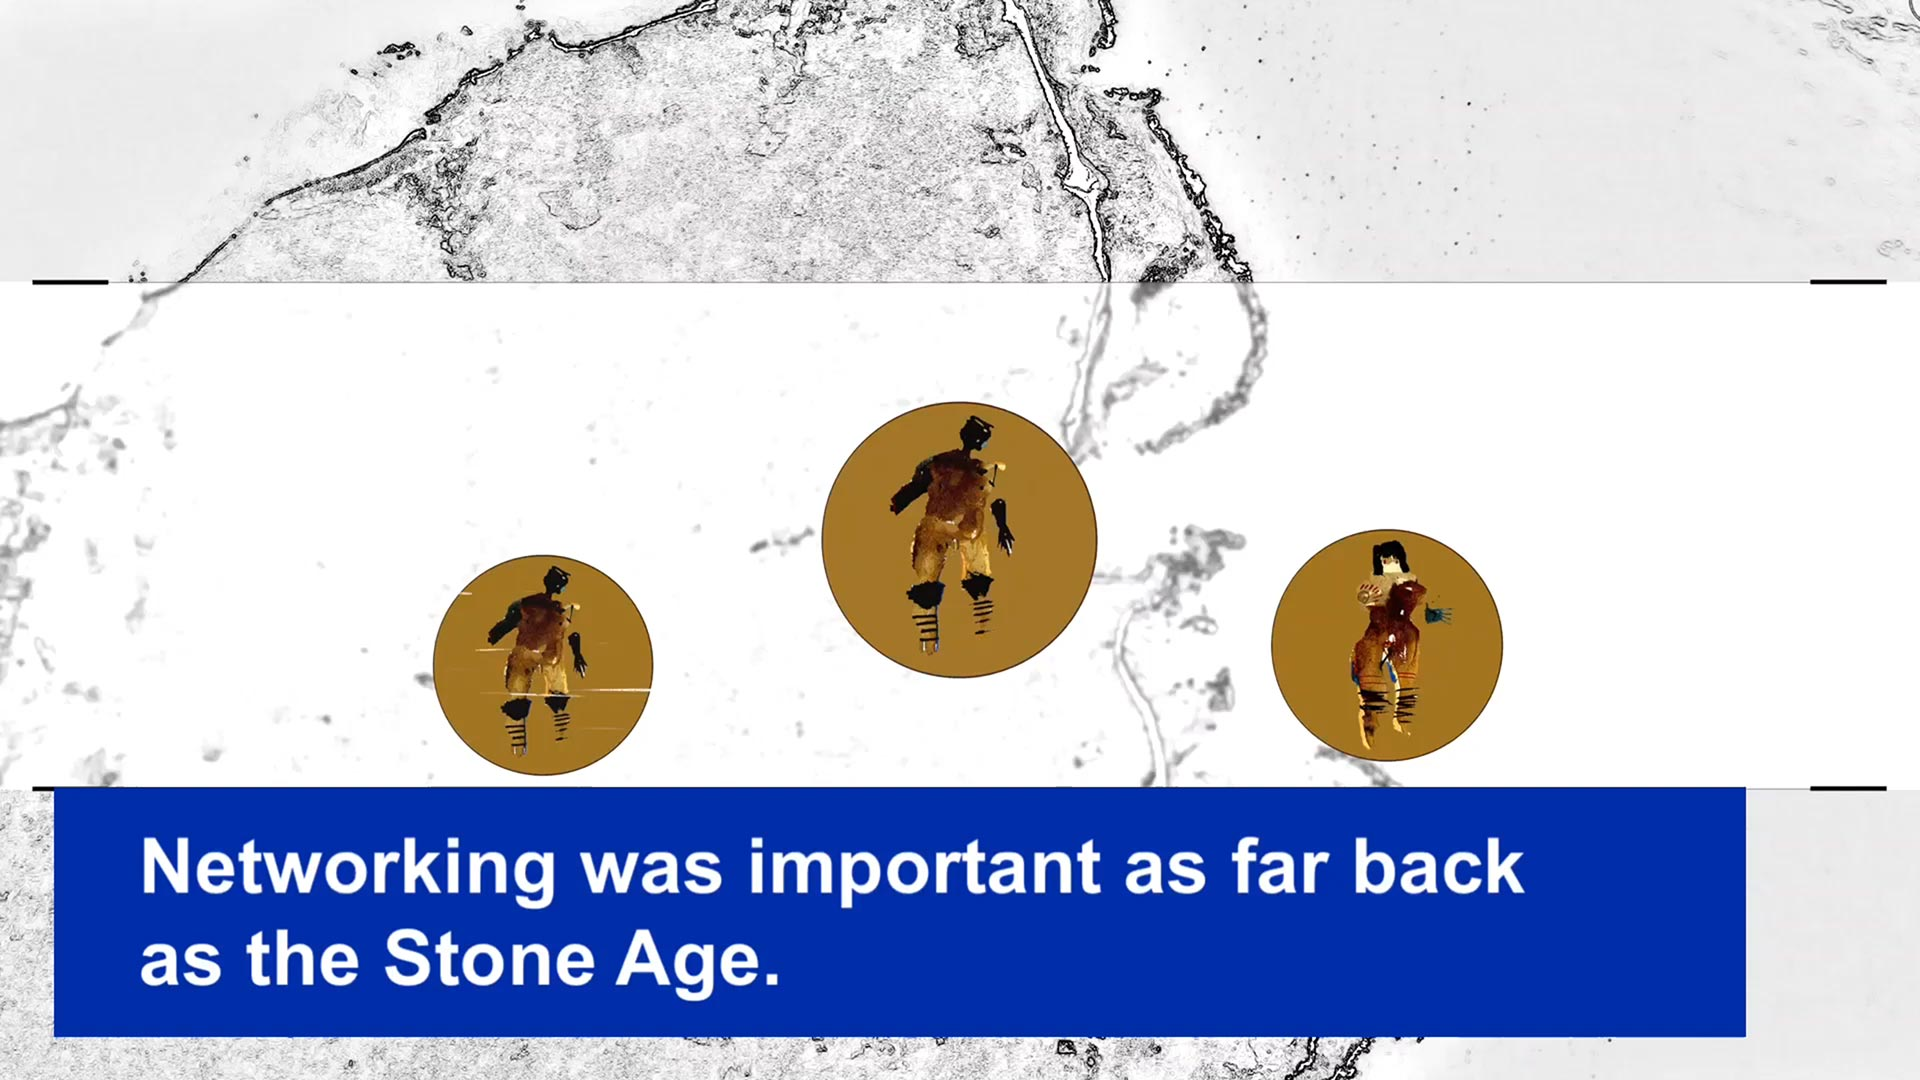 Developing Complex Culture in the Stone Age: Hunter-Gatherer Networks Accelerated Human Evolution - SciTechDaily